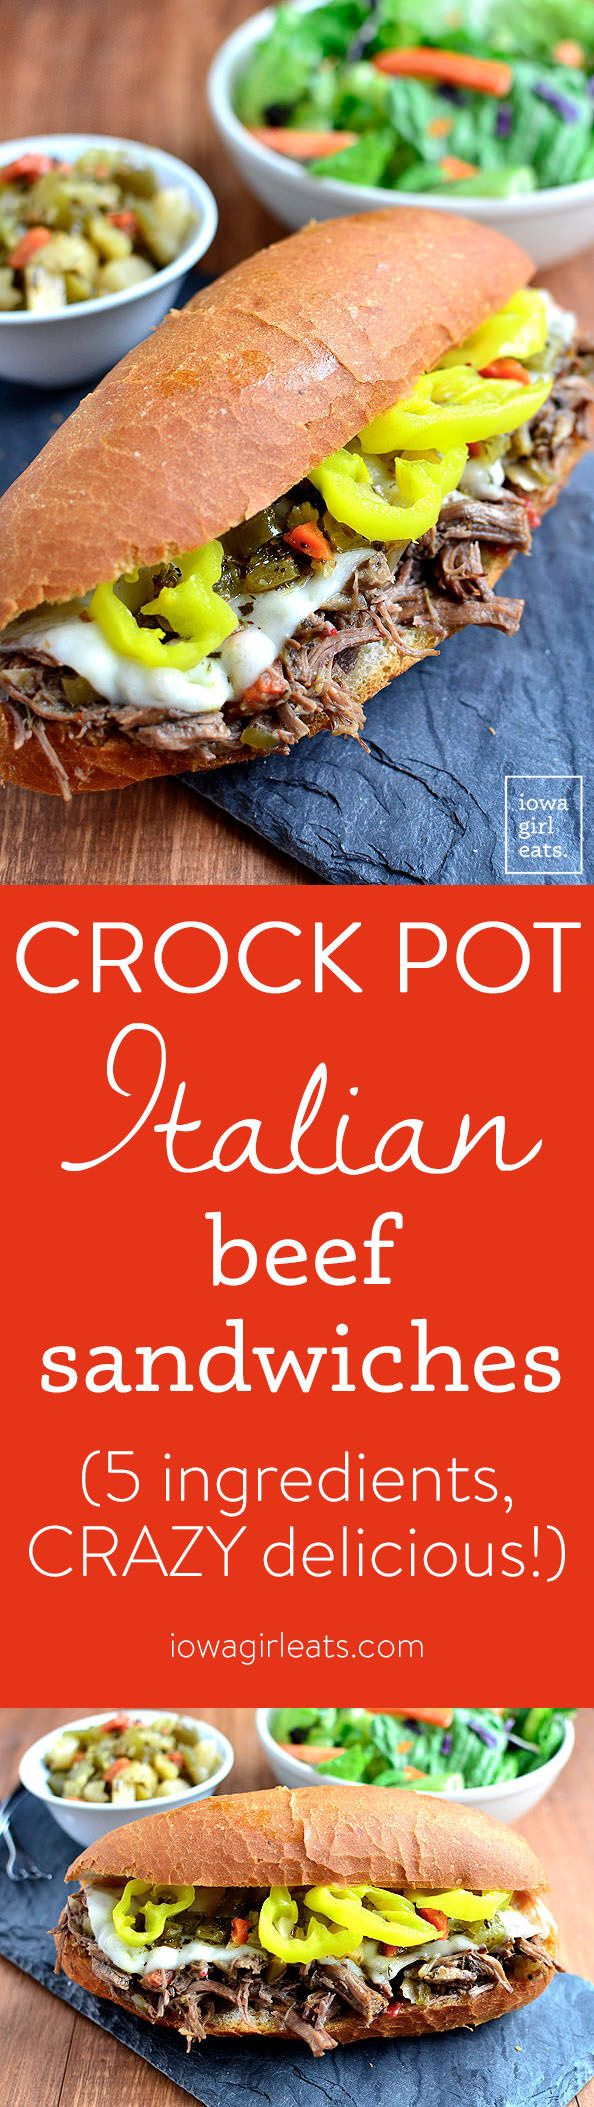 Crock Pot Italian Beef Sandwiches are the 5-ingredient crock pot version of the popular hot sandwich recipe. This easy dinner recipe is a crowd-pleaser! | iowagirleats.com